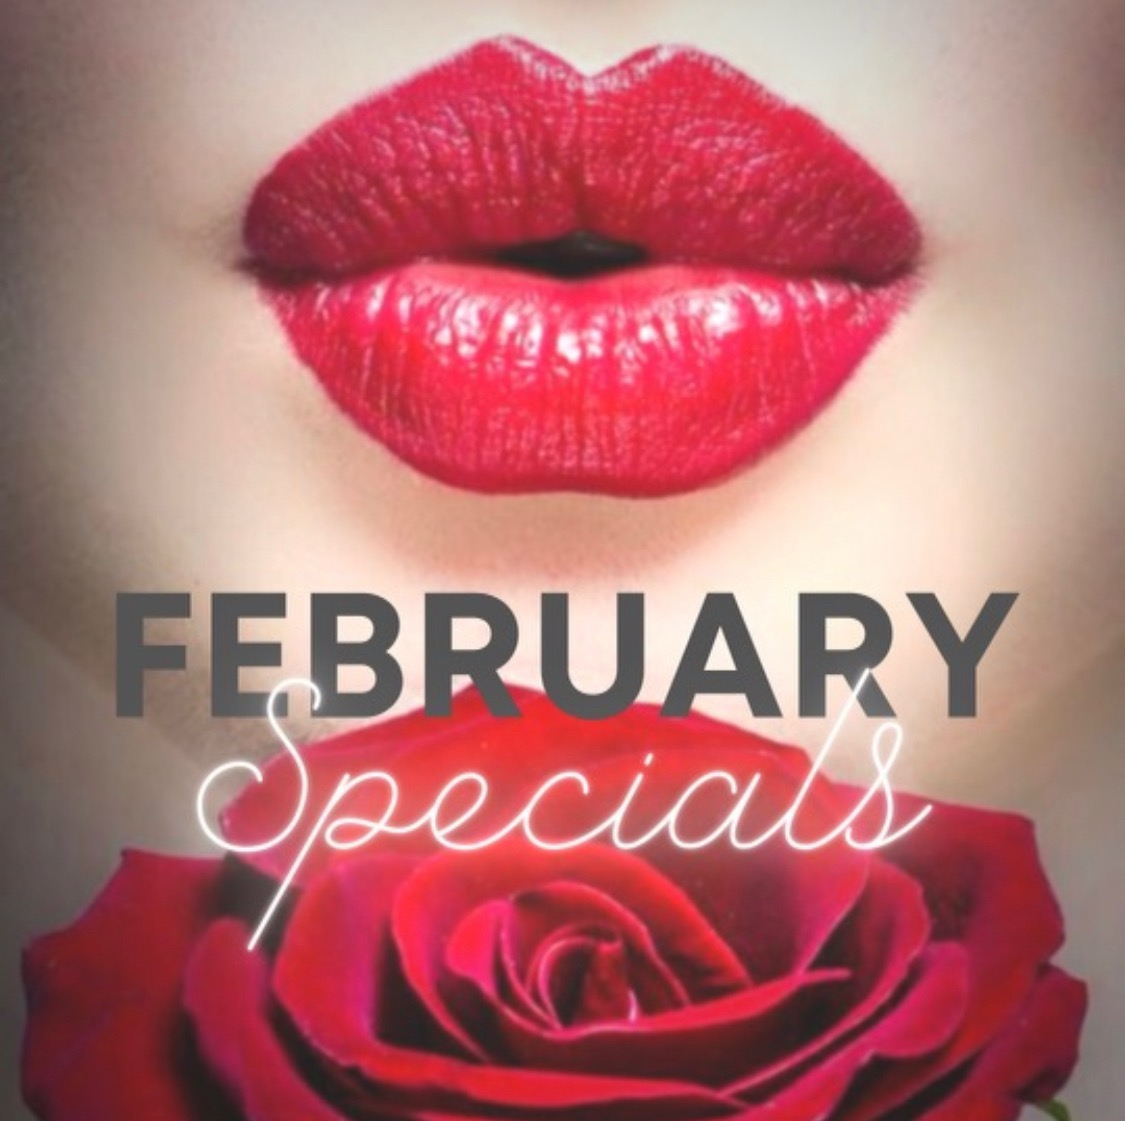 "Utopia Medspa wants you to celebrate love the whole month of February!  ""KYSSE"" those lovely lips of yours when you take 10% off lip filler, (free lip kit) and say goodbye to LOVE handles with 20% off TruSculpt. Also, receive 10% off iS Clinical LIP scrub this month.  Call to book an appointment 713-622-2277"